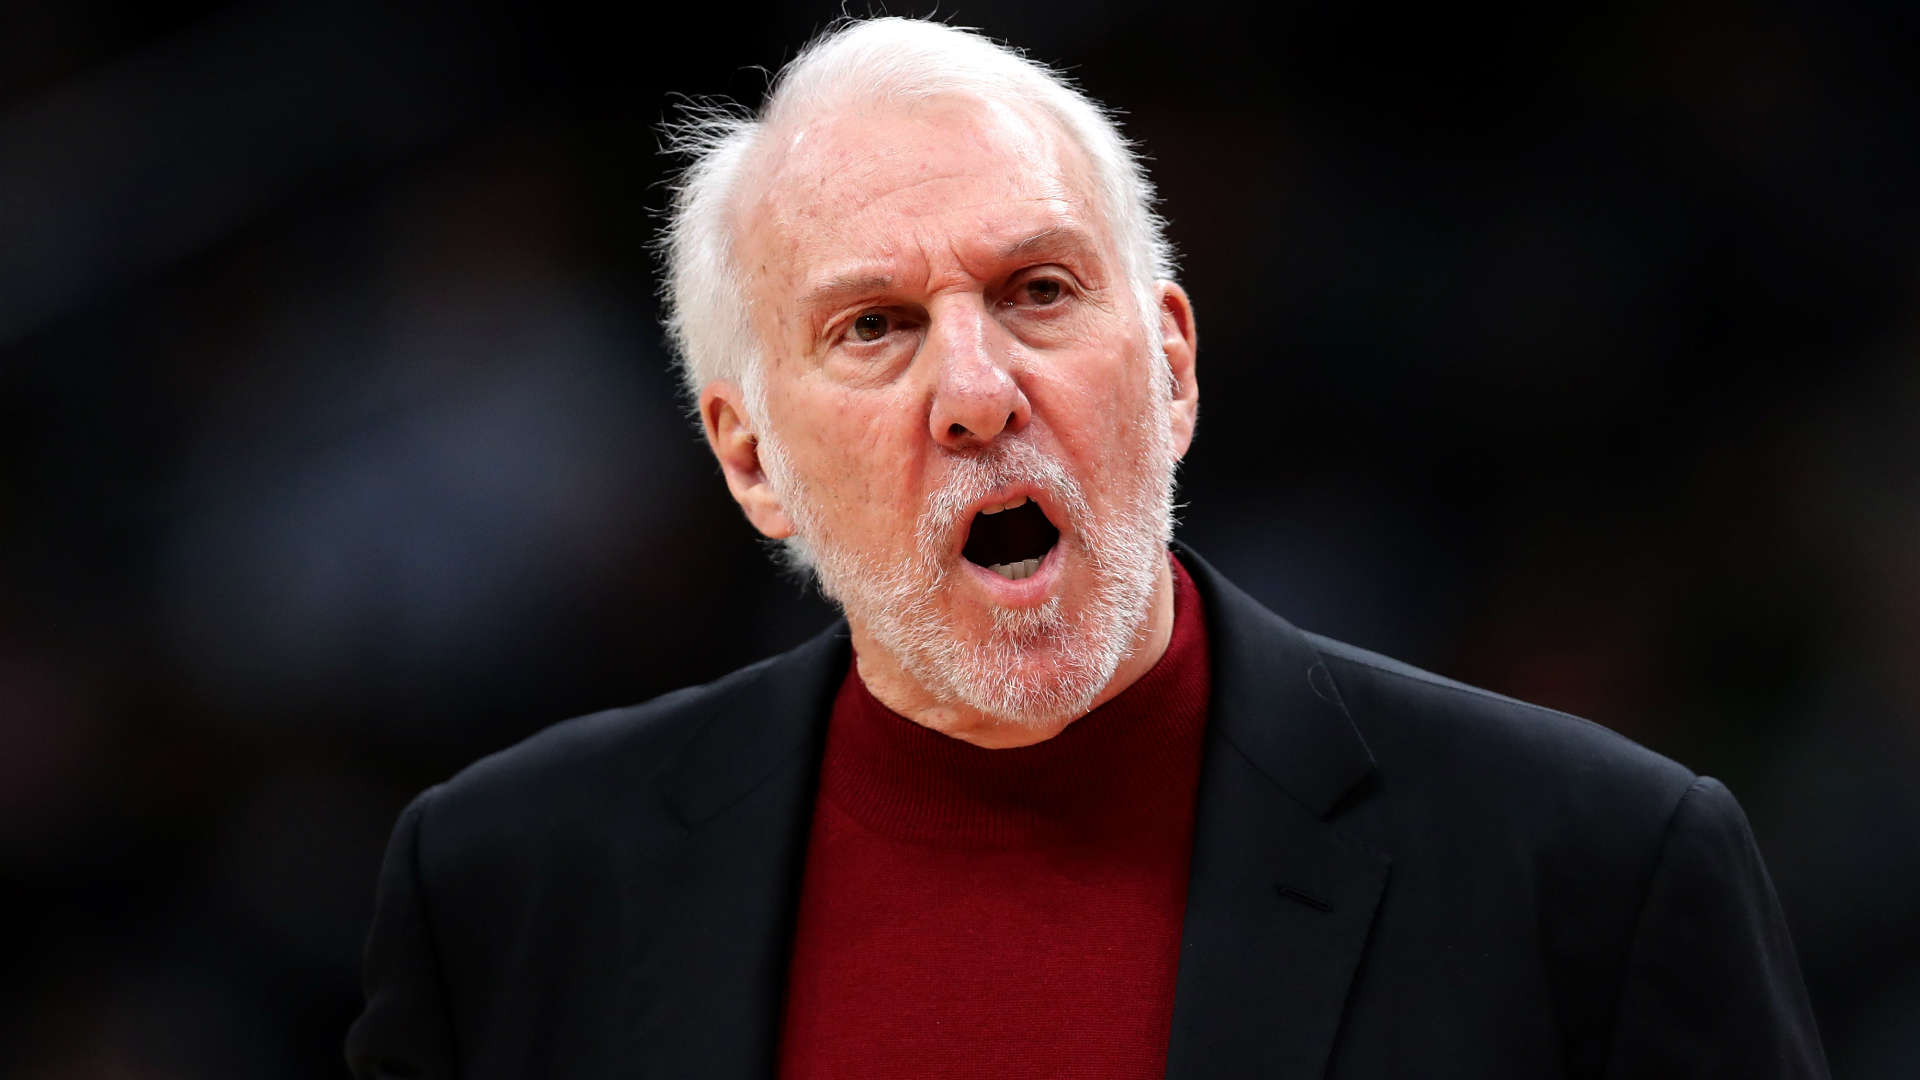 Popovich slams Knicks for 'ridiculous' decision to fire Fizdale